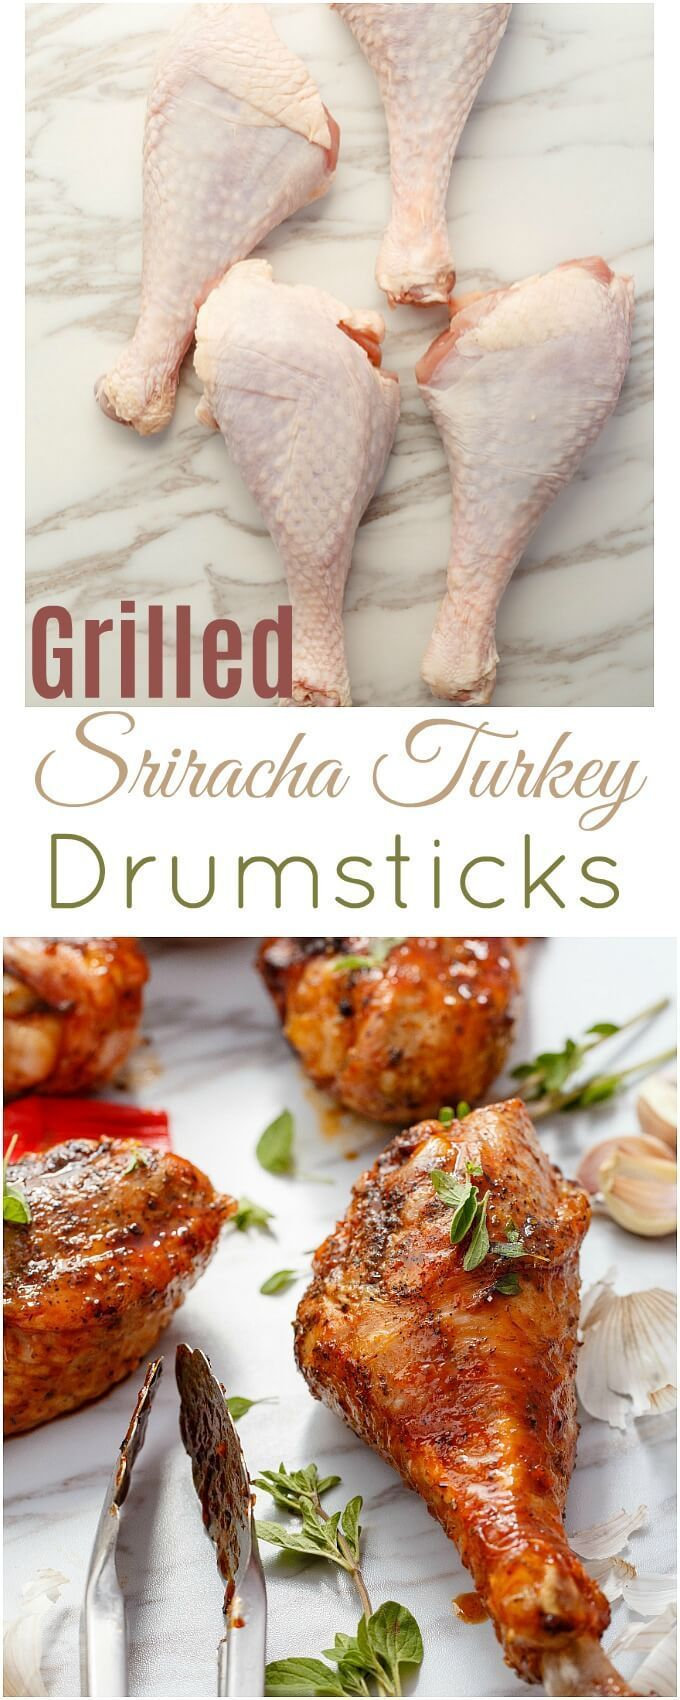 Grilled Sriracha Turkey Drumsticks | http://thecookiewriter.com | @thecookiewriter | #sponsored #turkey | An easy grilling recipe, these grilled sriracha turkey drumsticks are gluten-free and great for beginners! Healthy, too!